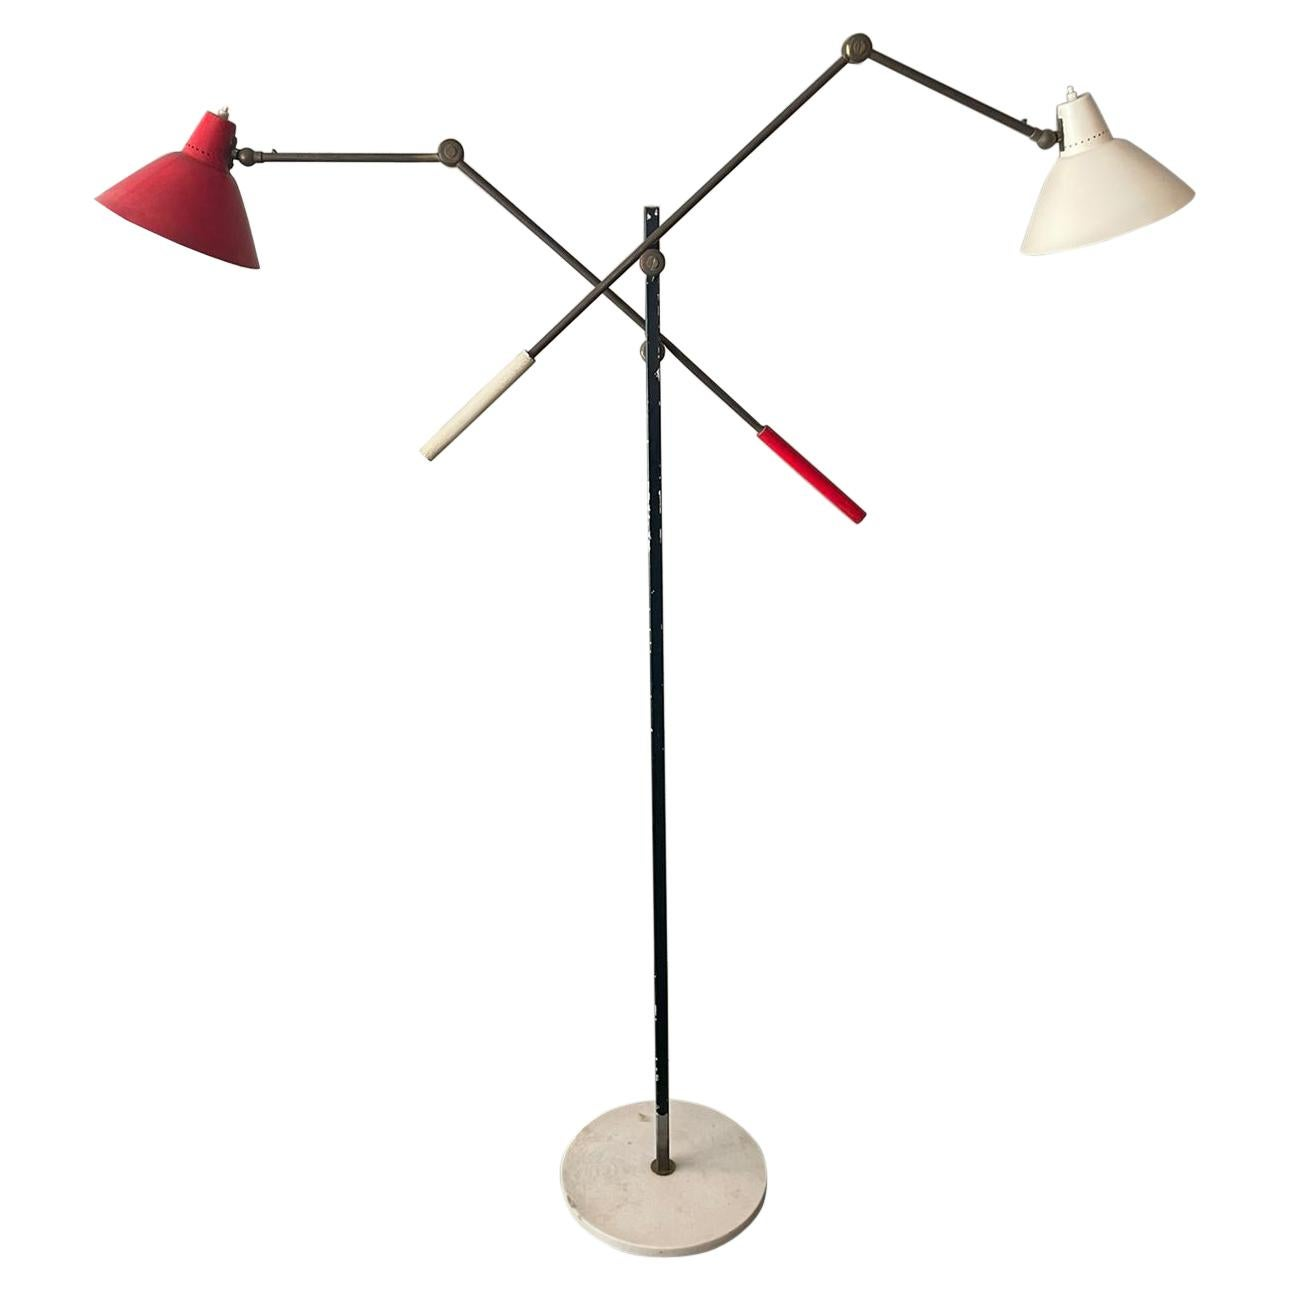 Stilnovo Floor Lamp White and Red Metal Lampshades Brass Marble, Italy, 1955